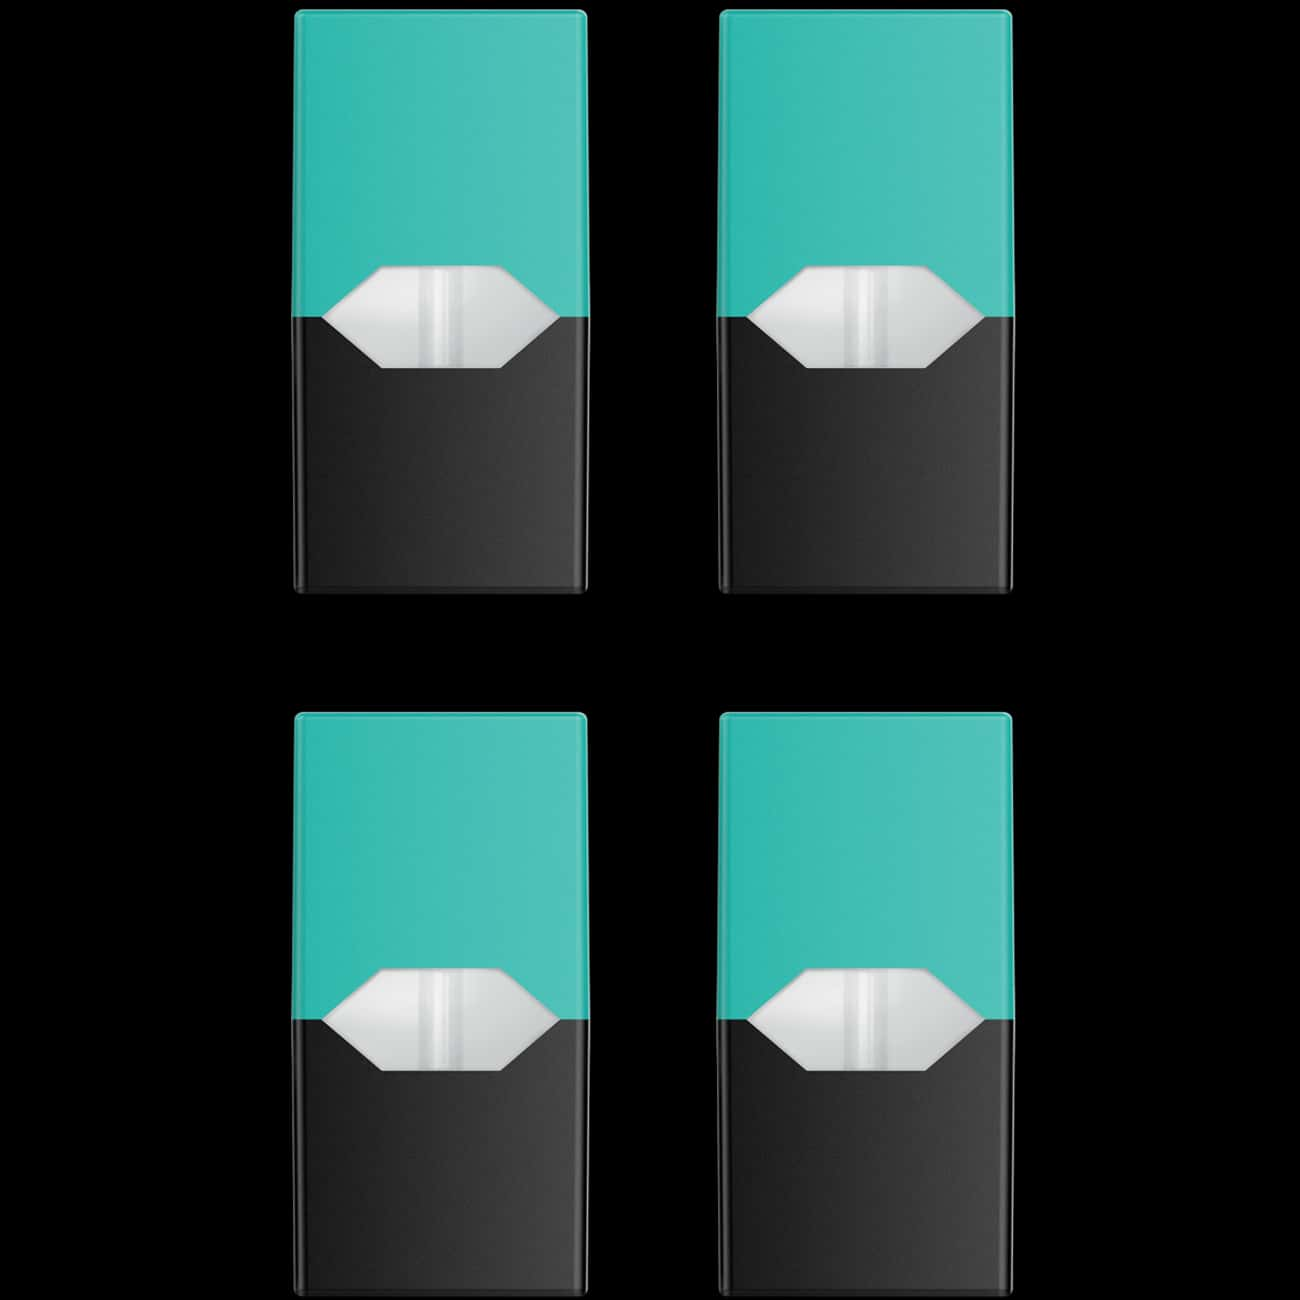 Menthol  is listed (or ranked) 4 on the list The Best JUUL Pod Flavors